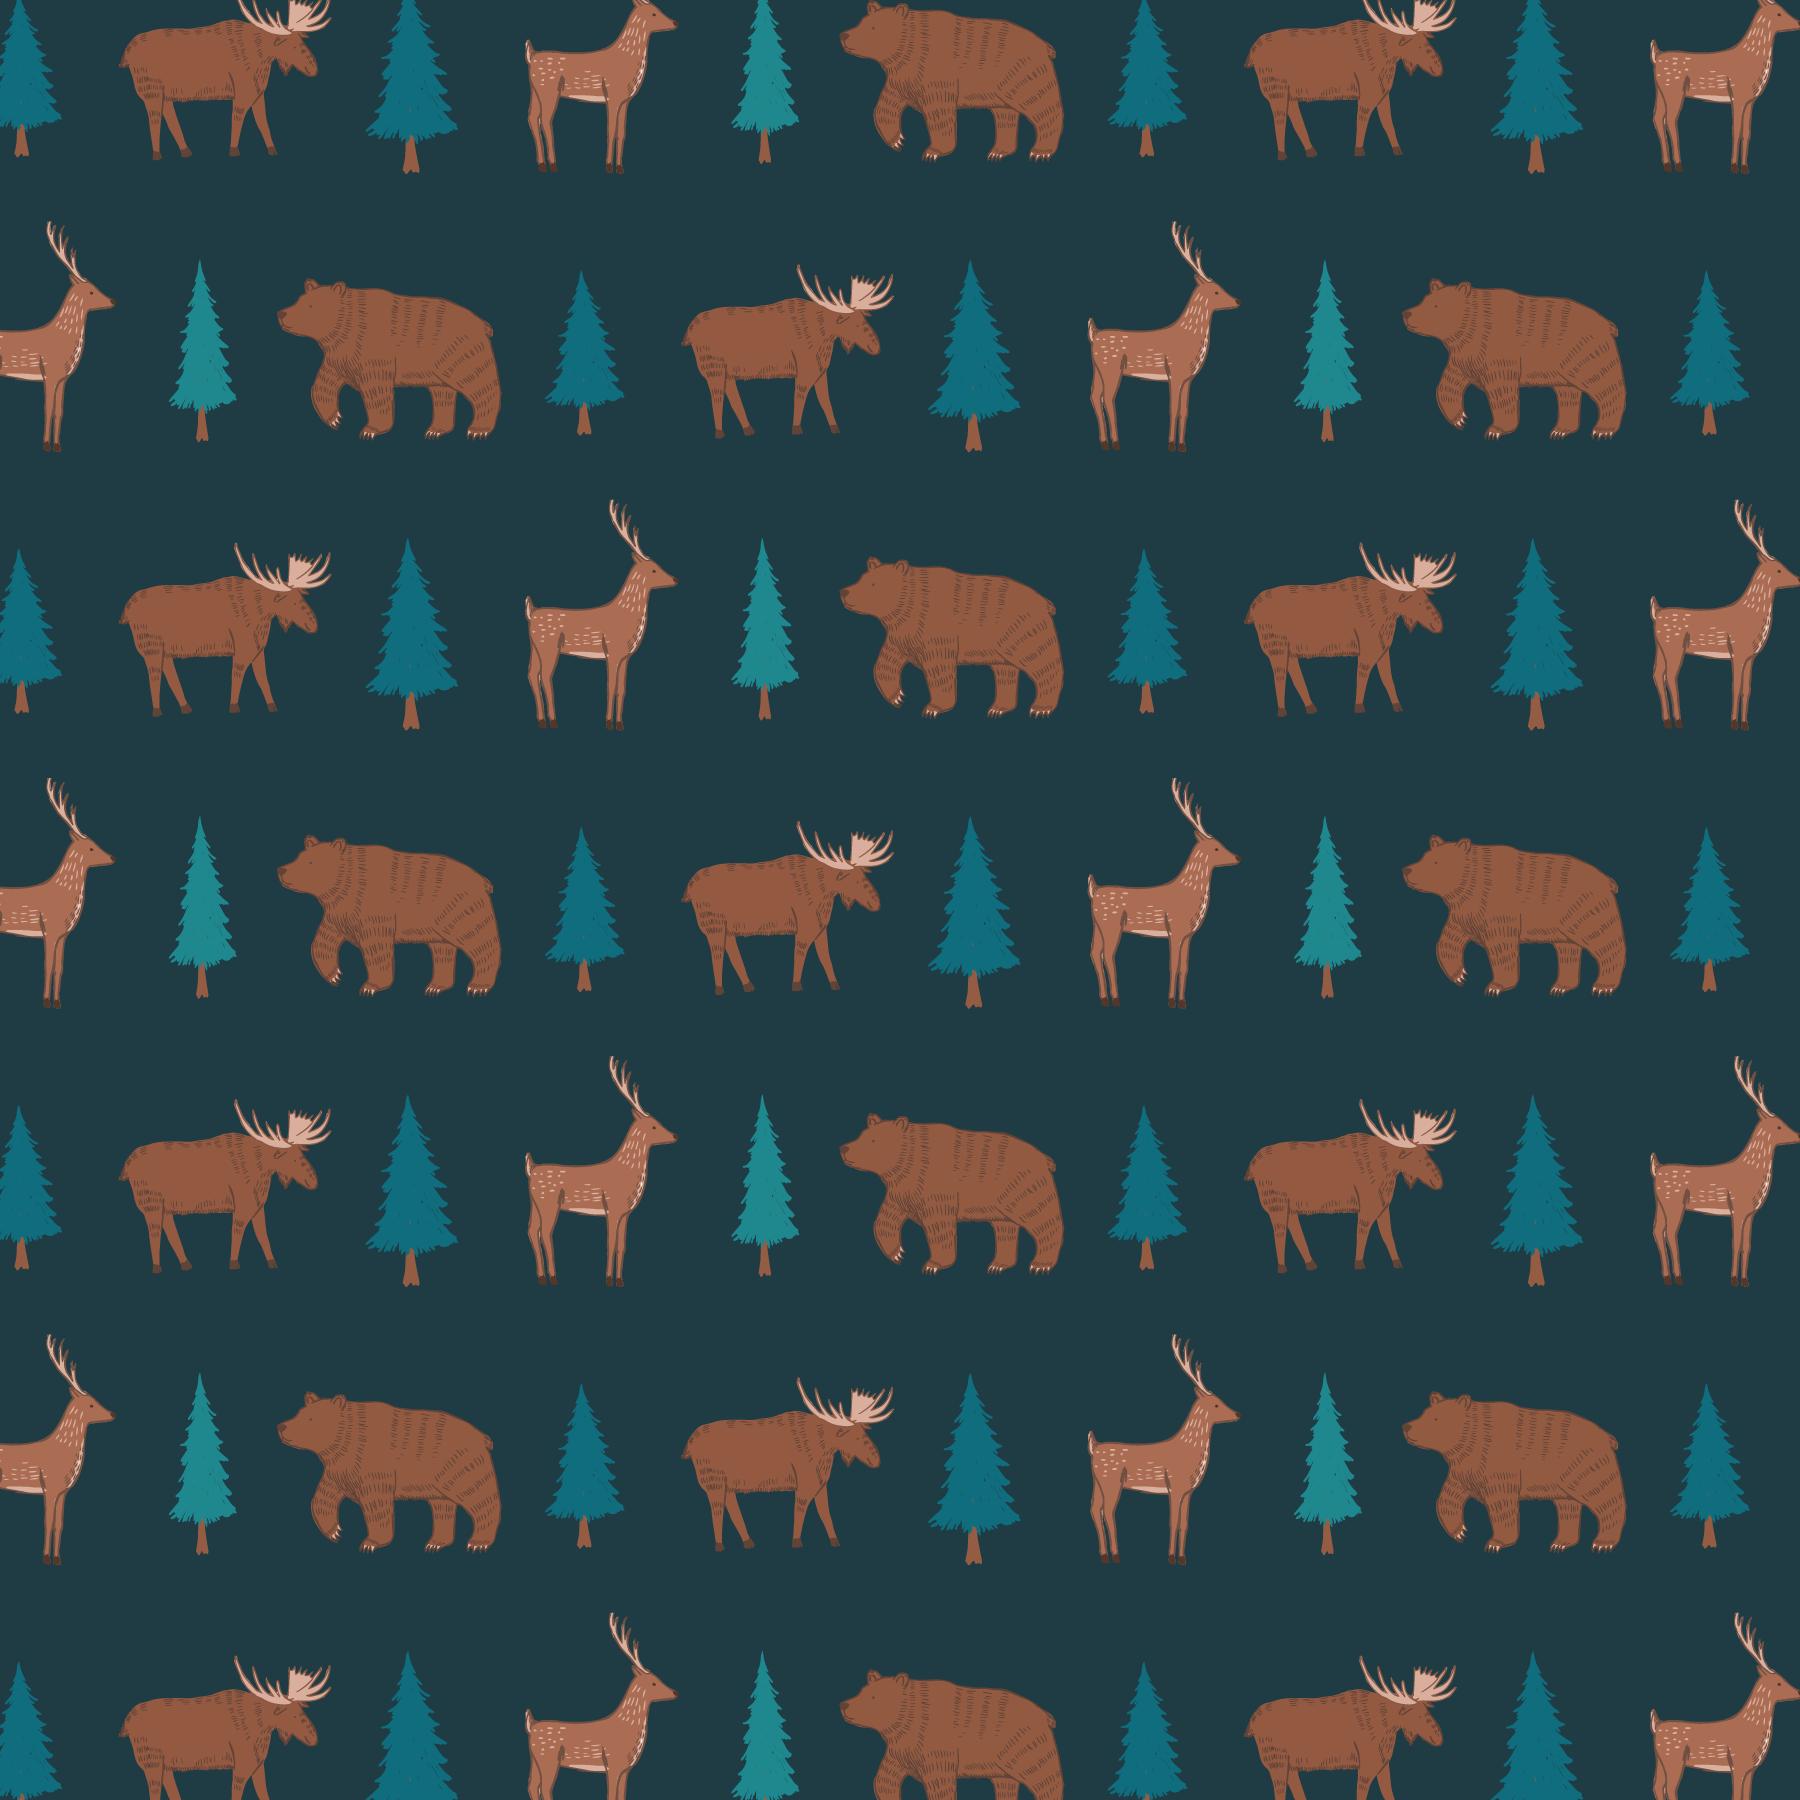 mountain-pattern-swatch-2.png